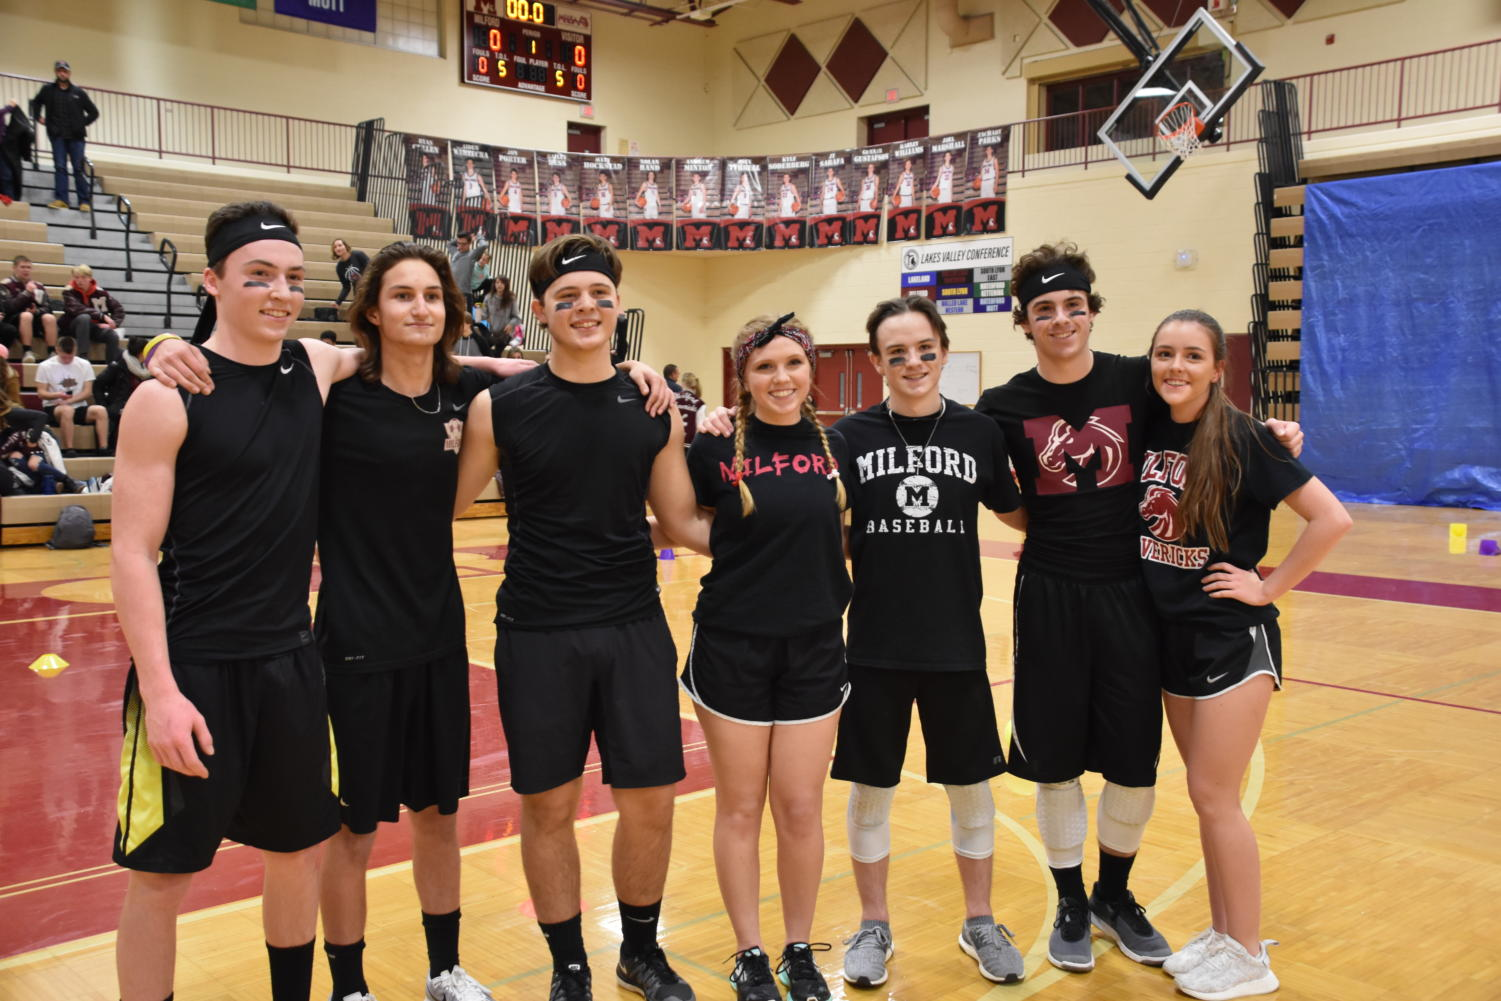 """Hard Targets,"" posing after their win. (Left to Right) Chance Murray, Steven Gillingham, Tyler Knapp, Natalie Deland, Spencer O'Neil, Dylan Riggs and India Kenhard"